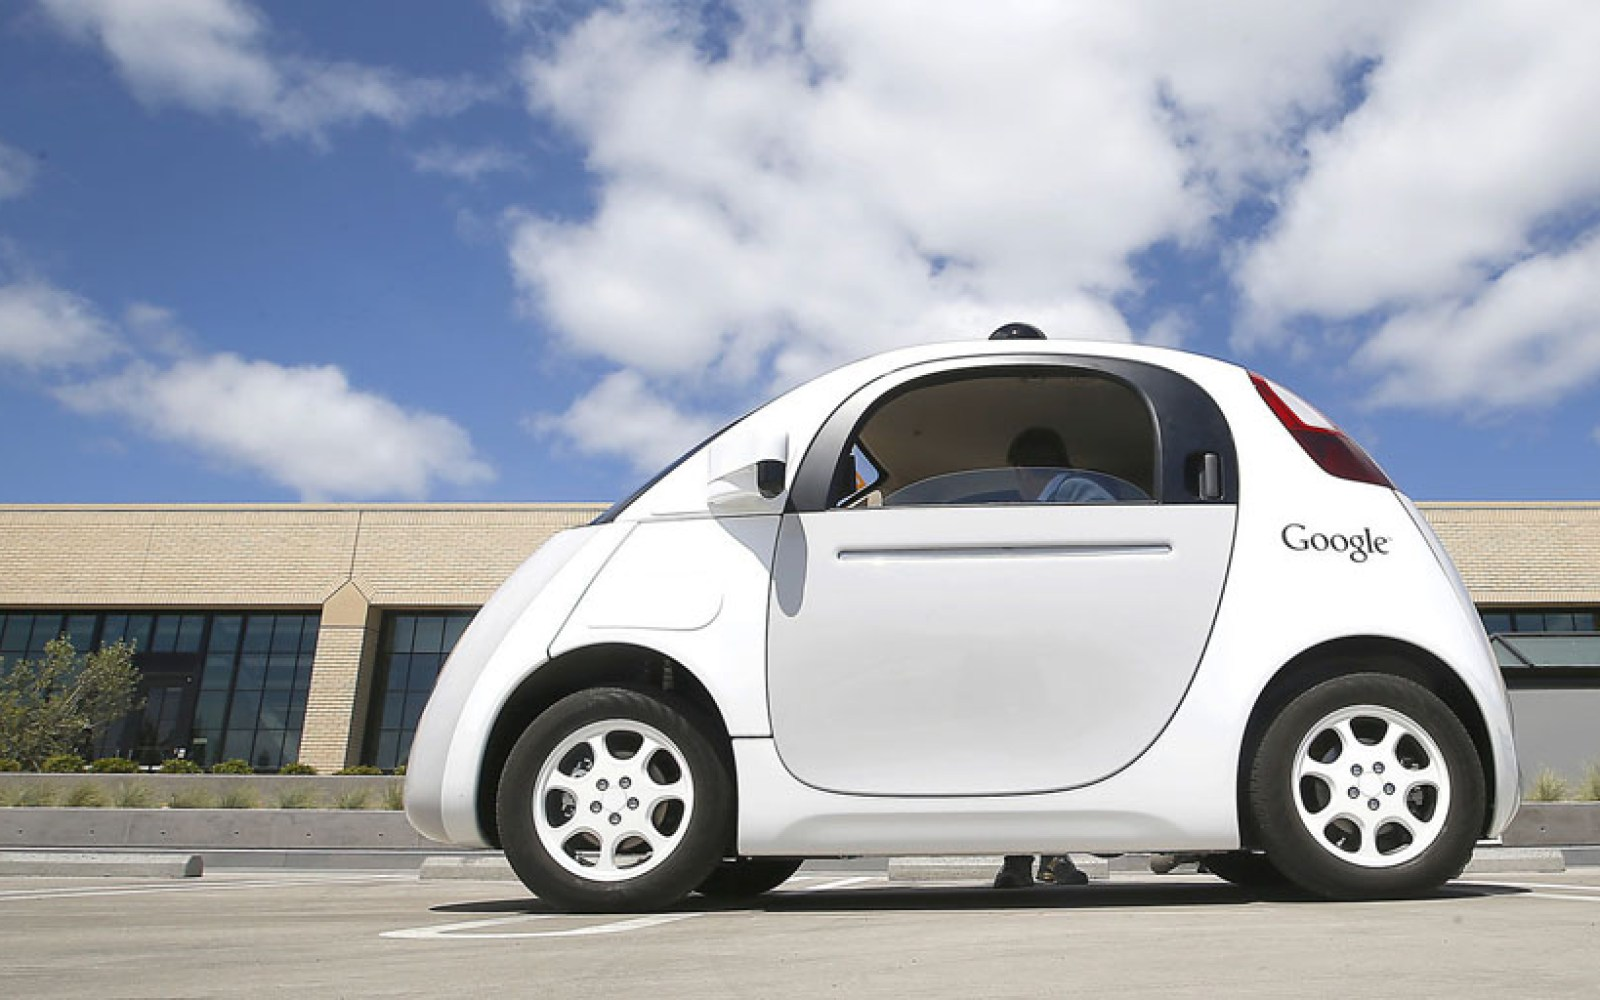 Google self-driving cars would have caused 10 accidents in 2015 without test drivers taking control